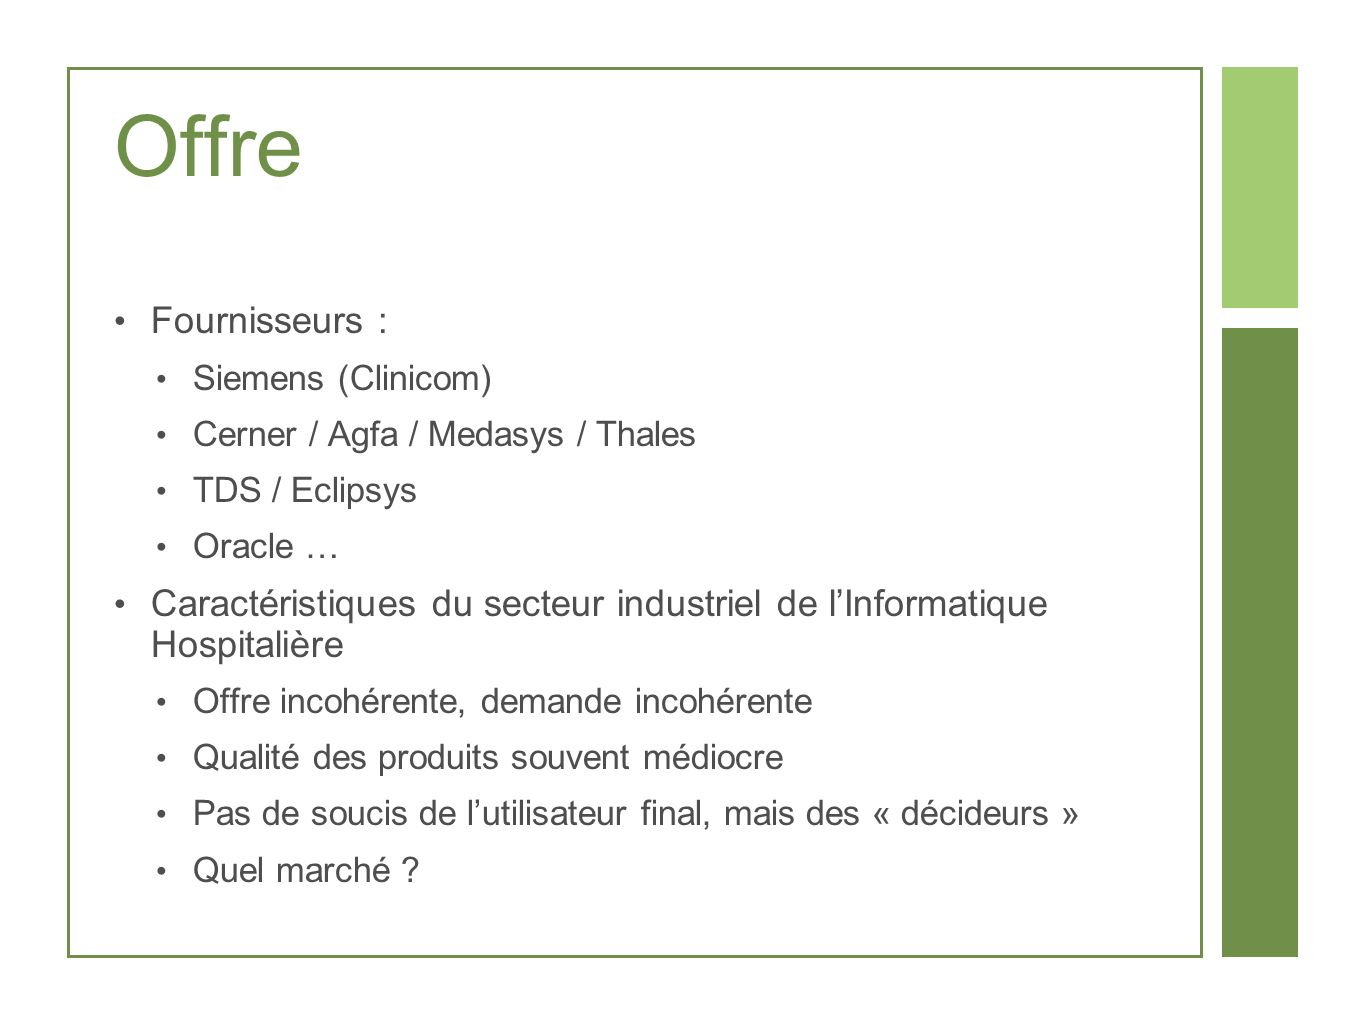 Offre Fournisseurs : Siemens (Clinicom) Cerner / Agfa / Medasys / Thales. TDS / Eclipsys. Oracle …